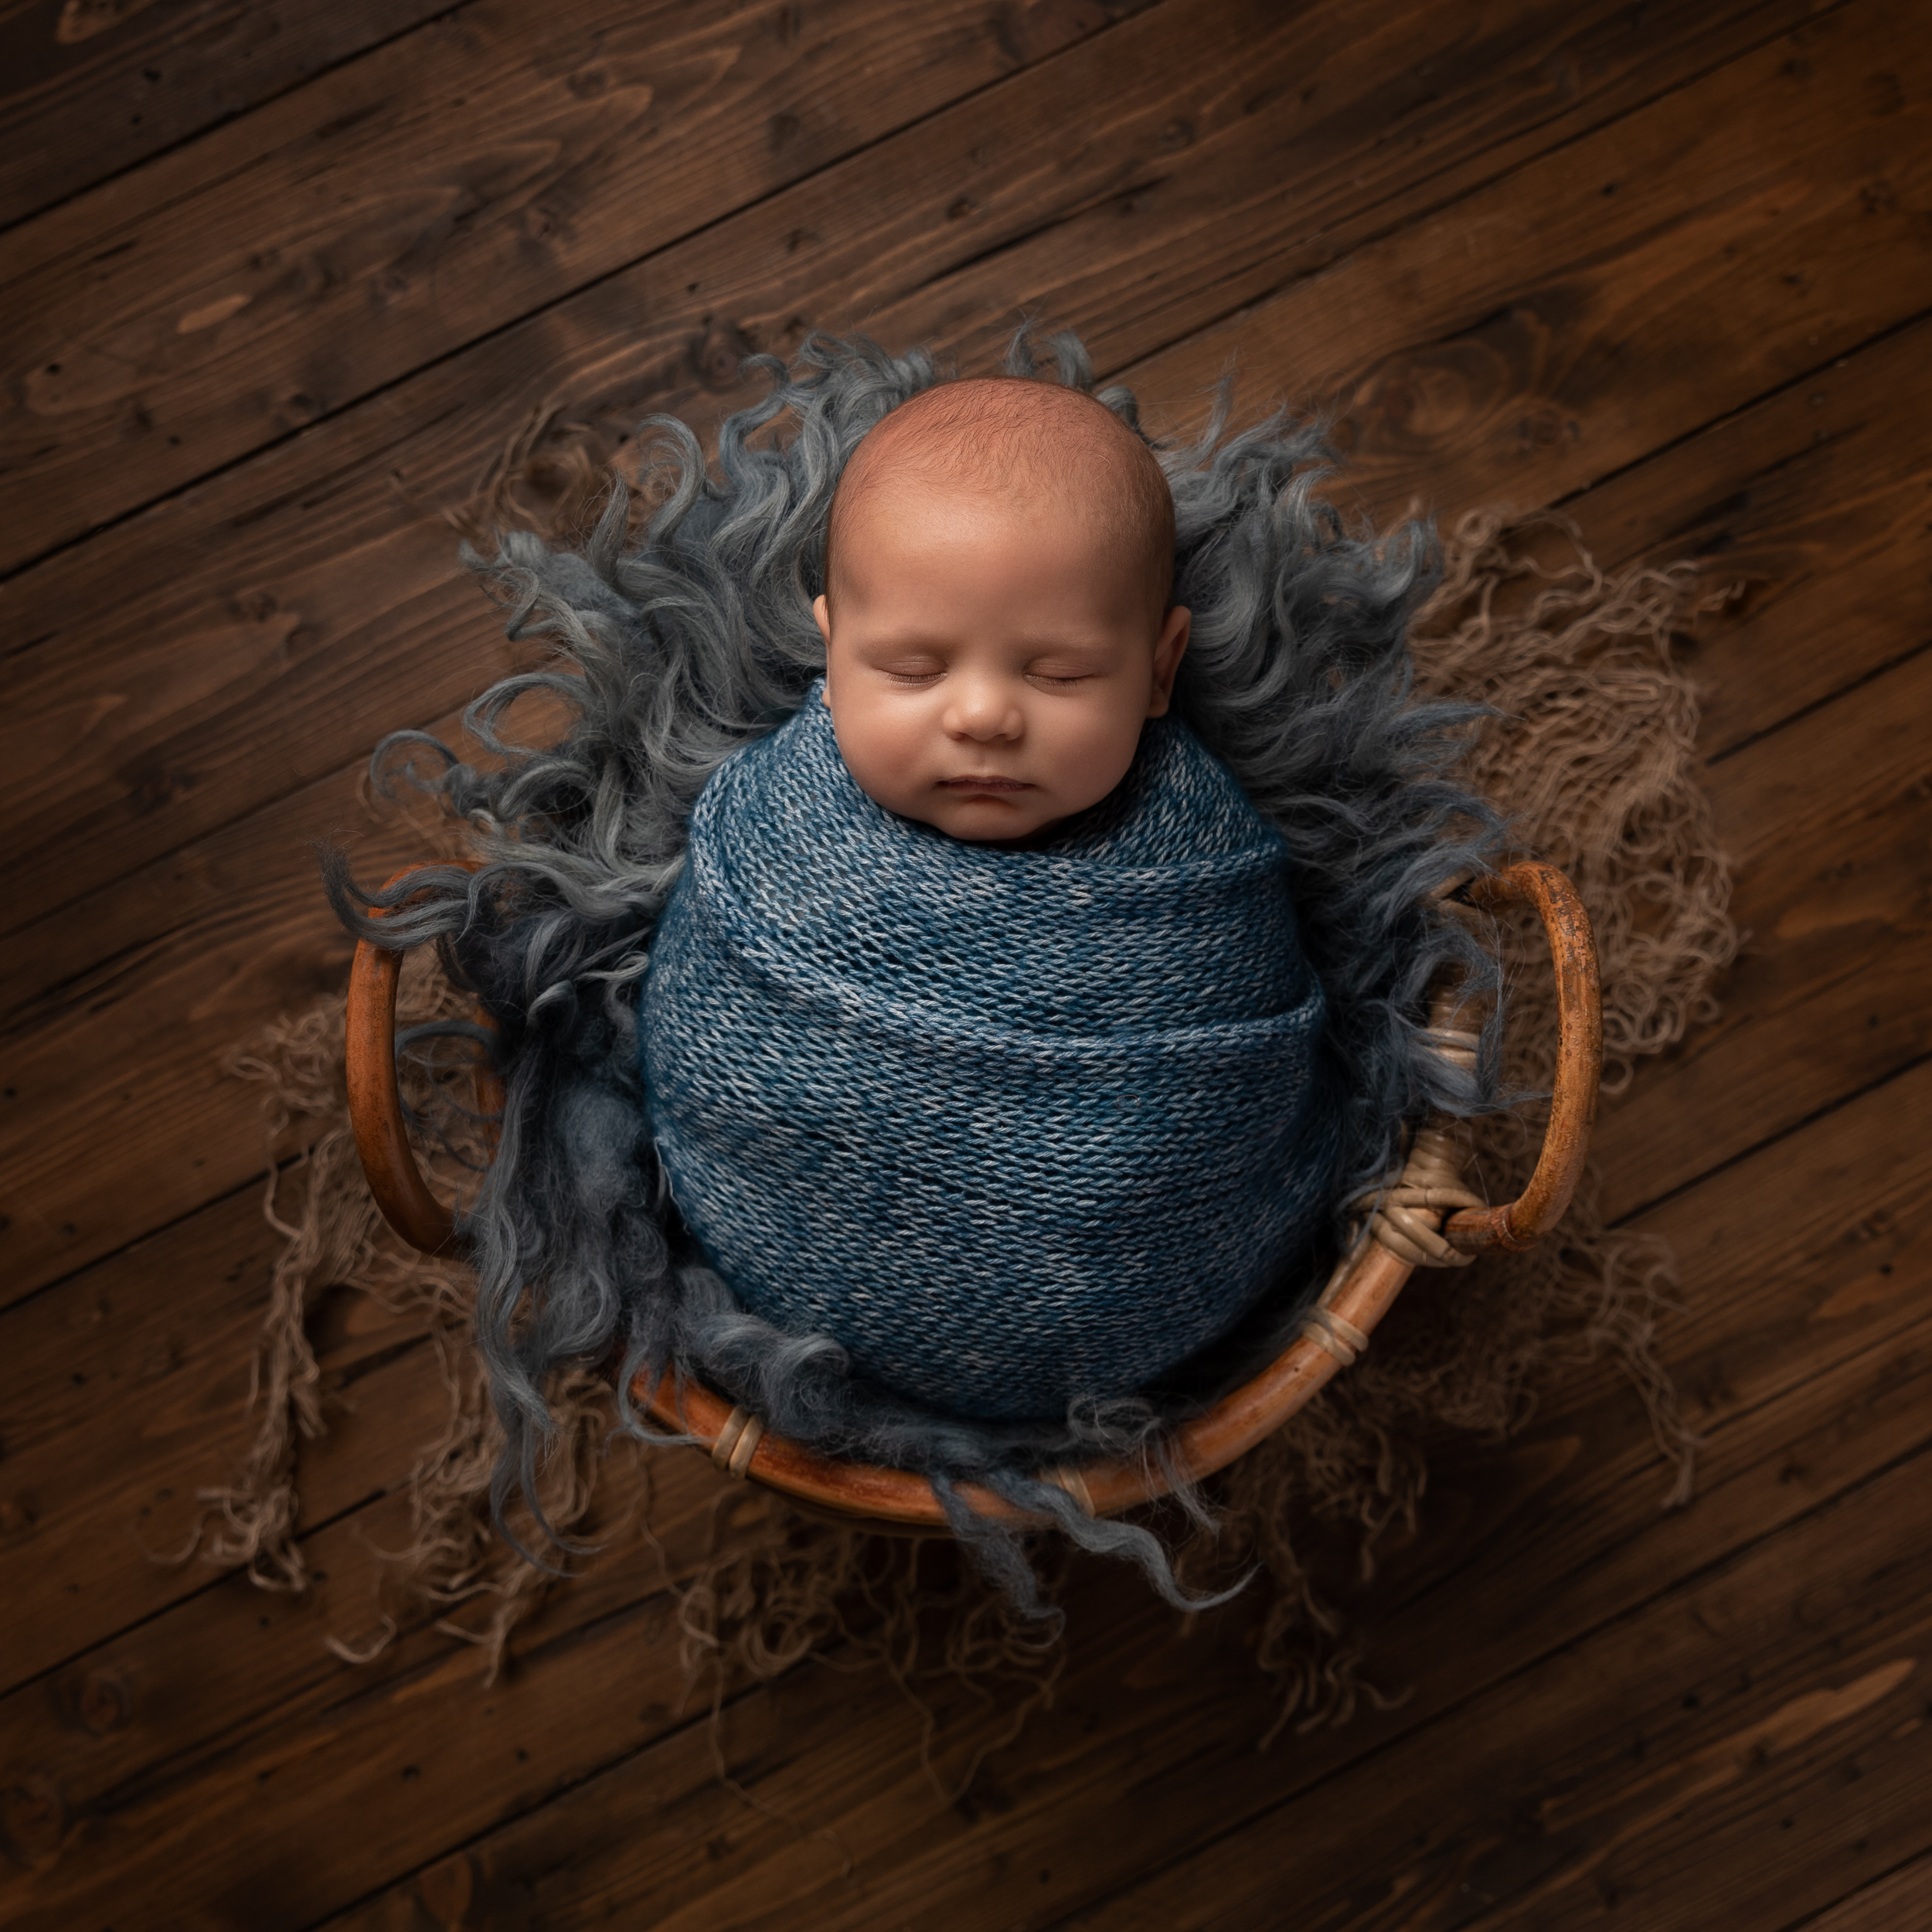 10 week old baby wrapped and asleep in a basket by Cheshire newborn photographer in Sandbach